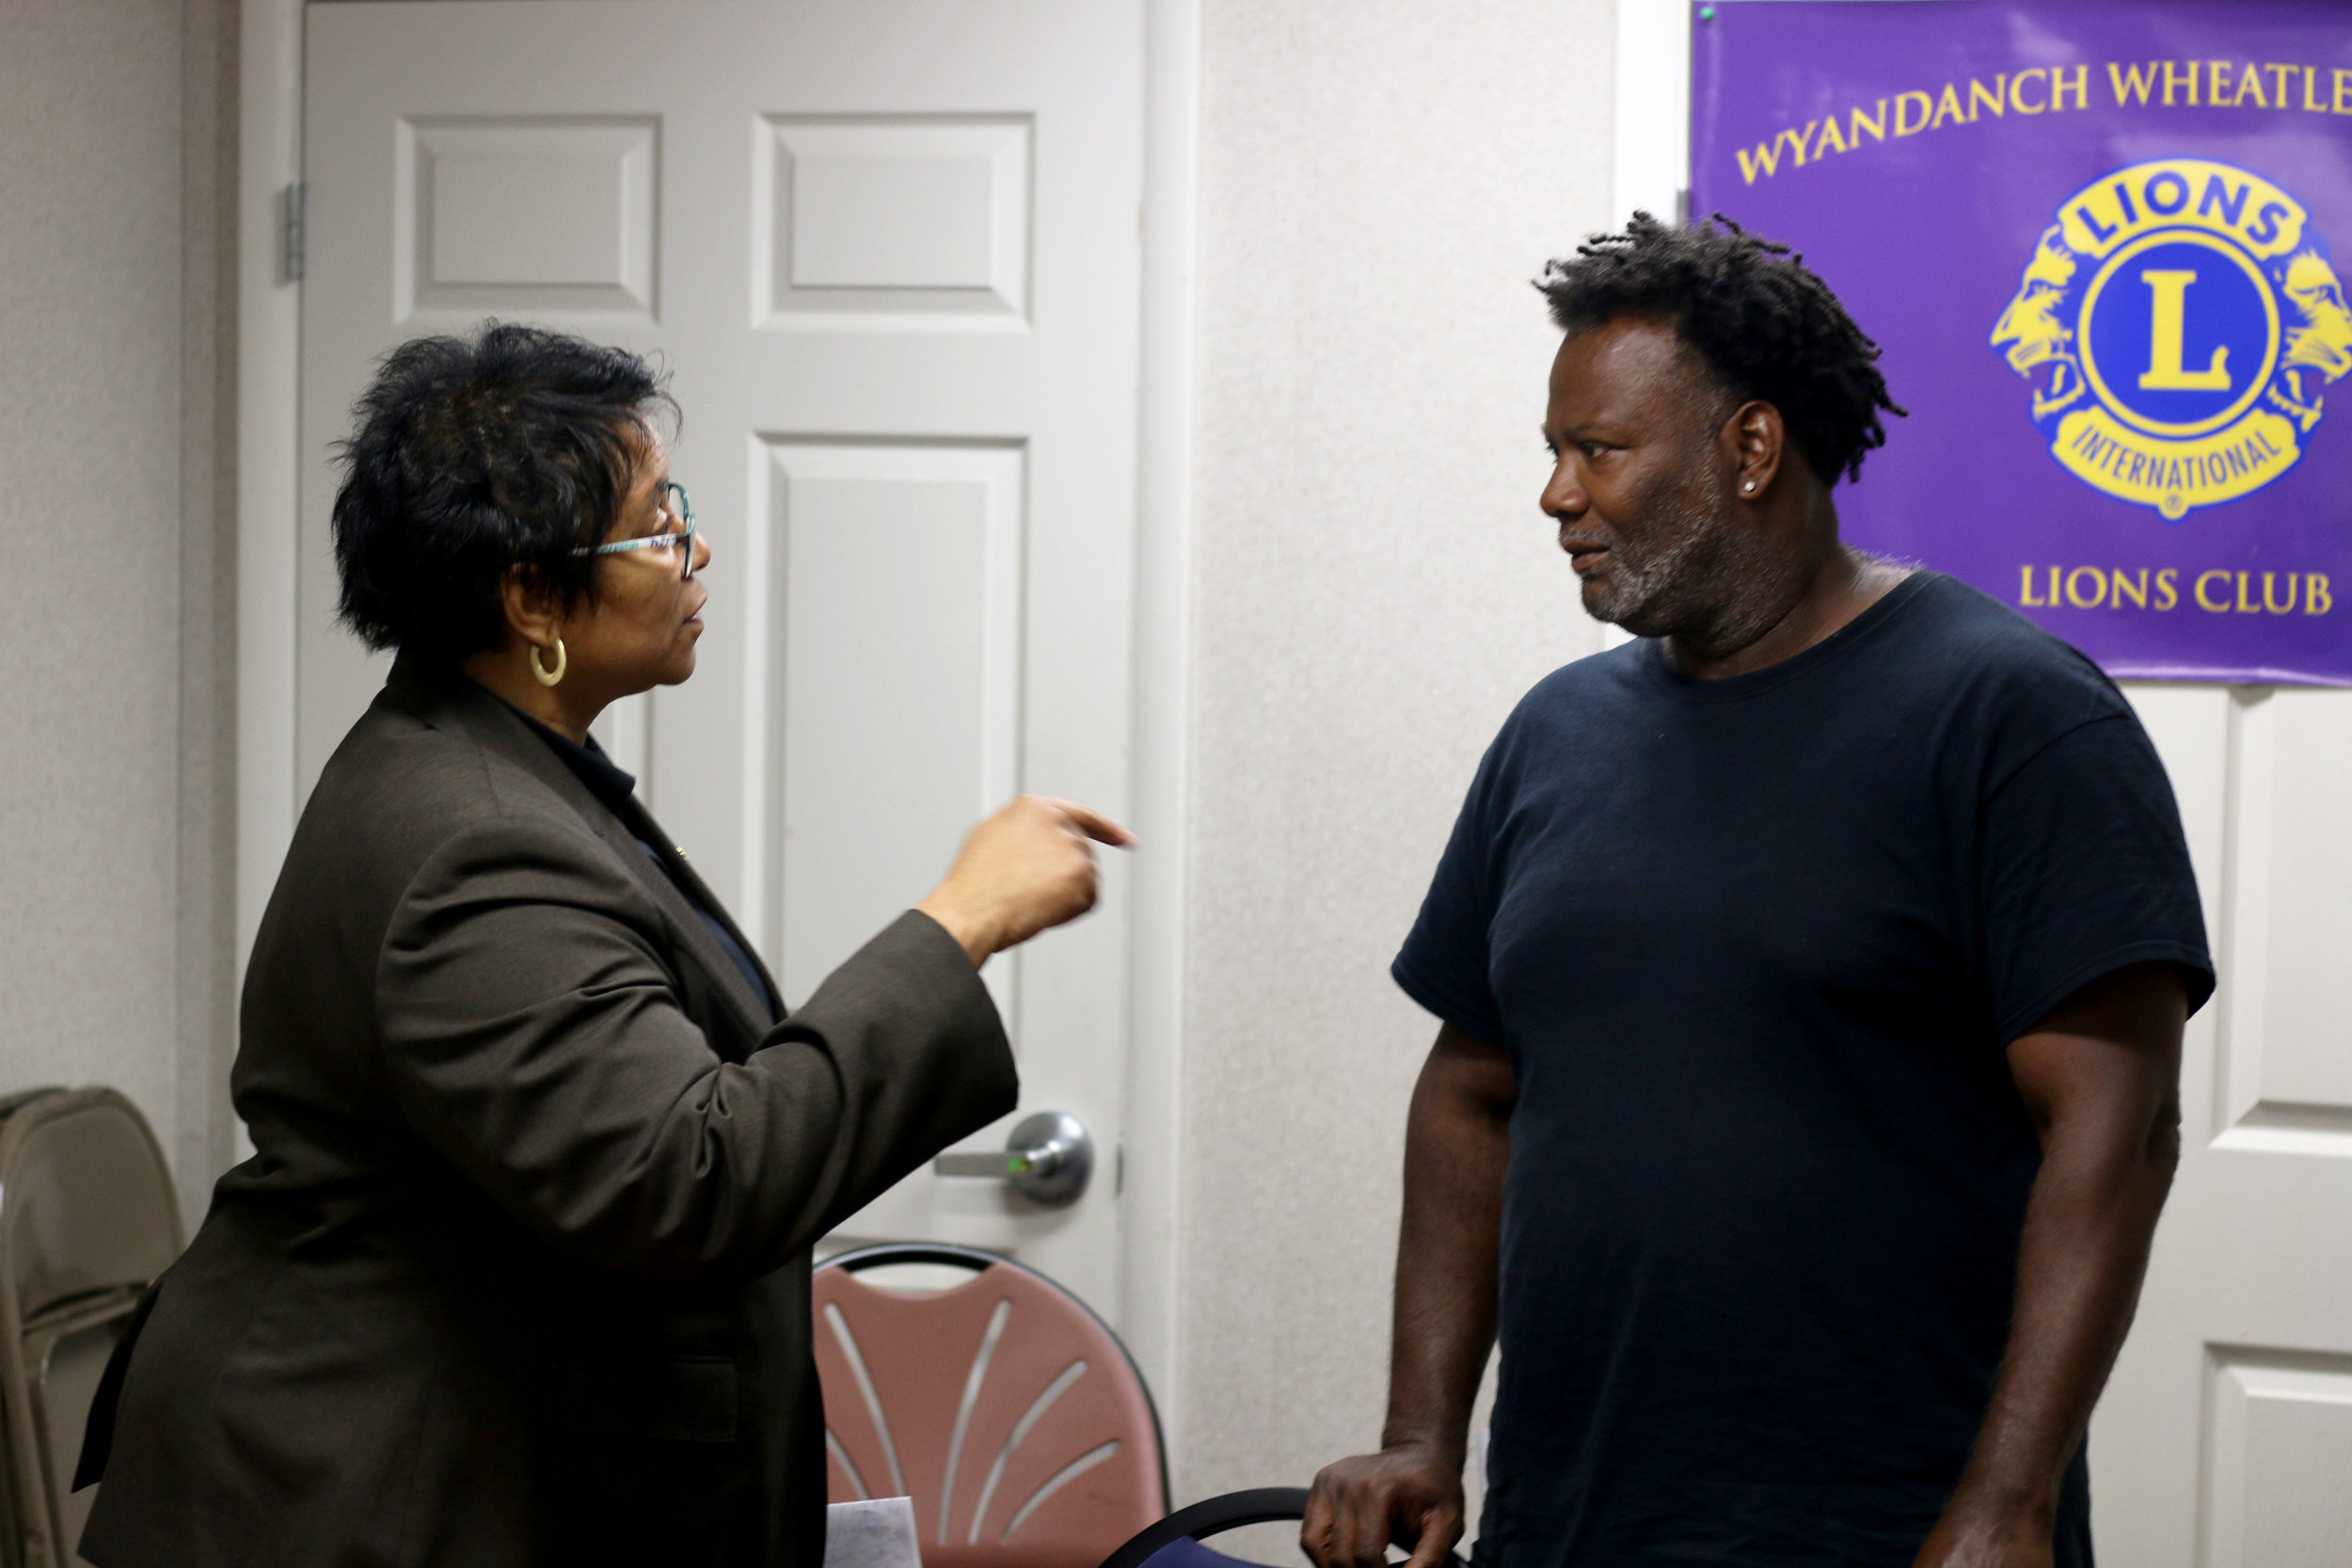 Mention-Lewis speaks to Yazid Owens, a facilitator of the Wyandanch meeting. Photo by Micah Danney.